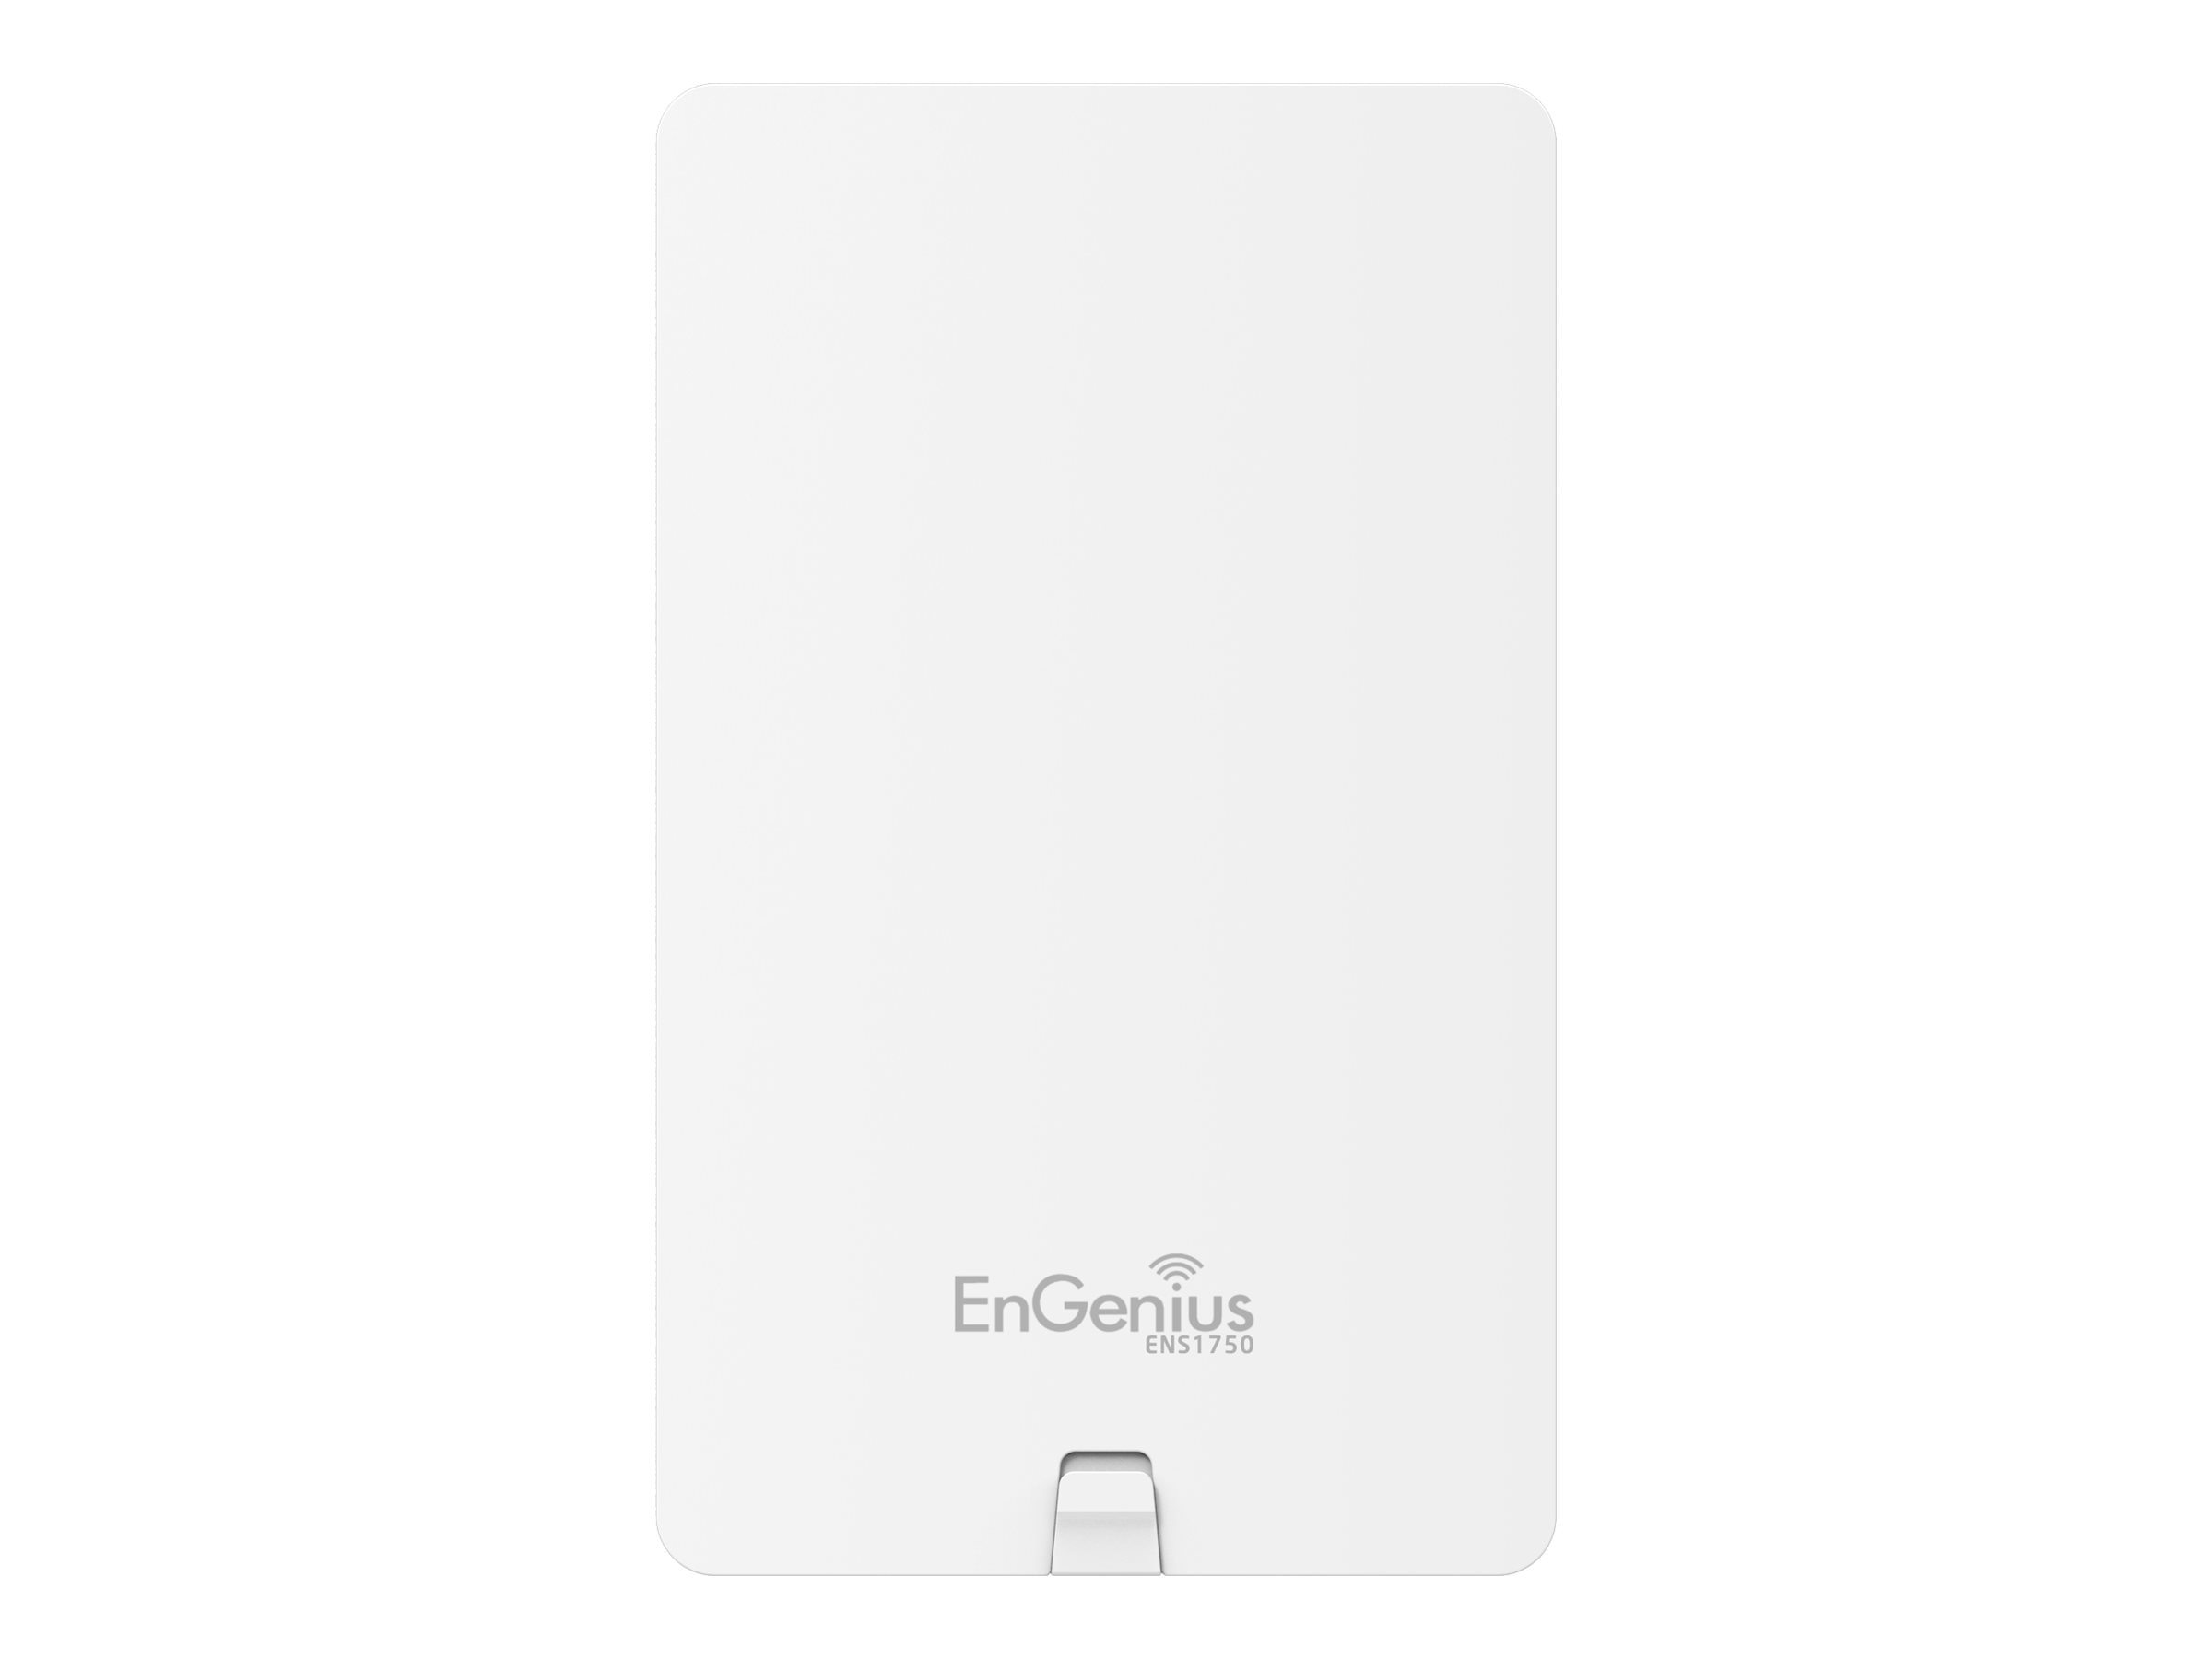 Engenius Technologies Dual Band Wireless AC1750 Outdoor Access Point, ENS1750, 18158691, Wireless Access Points & Bridges